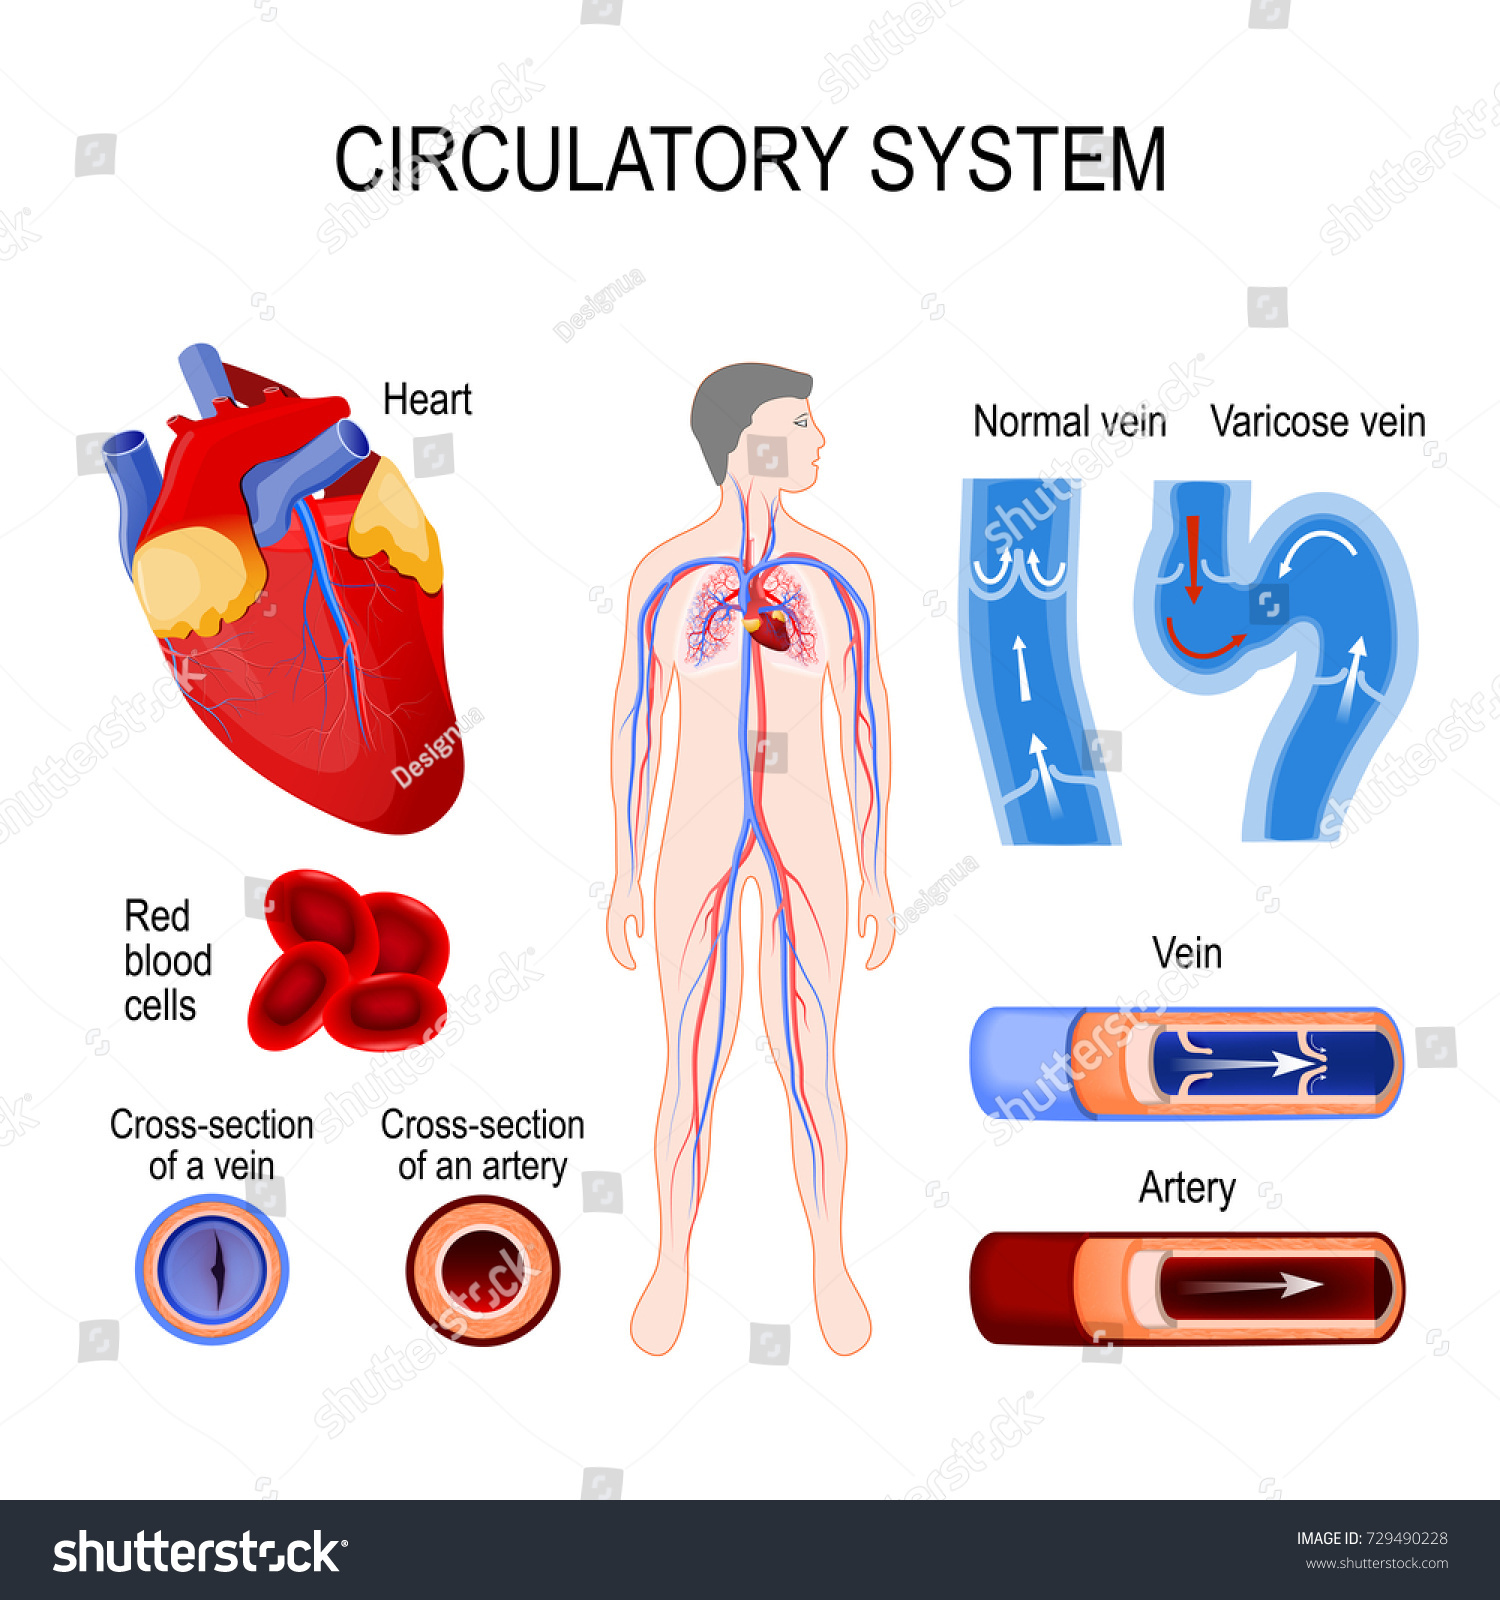 Circulatory System Heart Crosssection Artery Vein Stock Vector